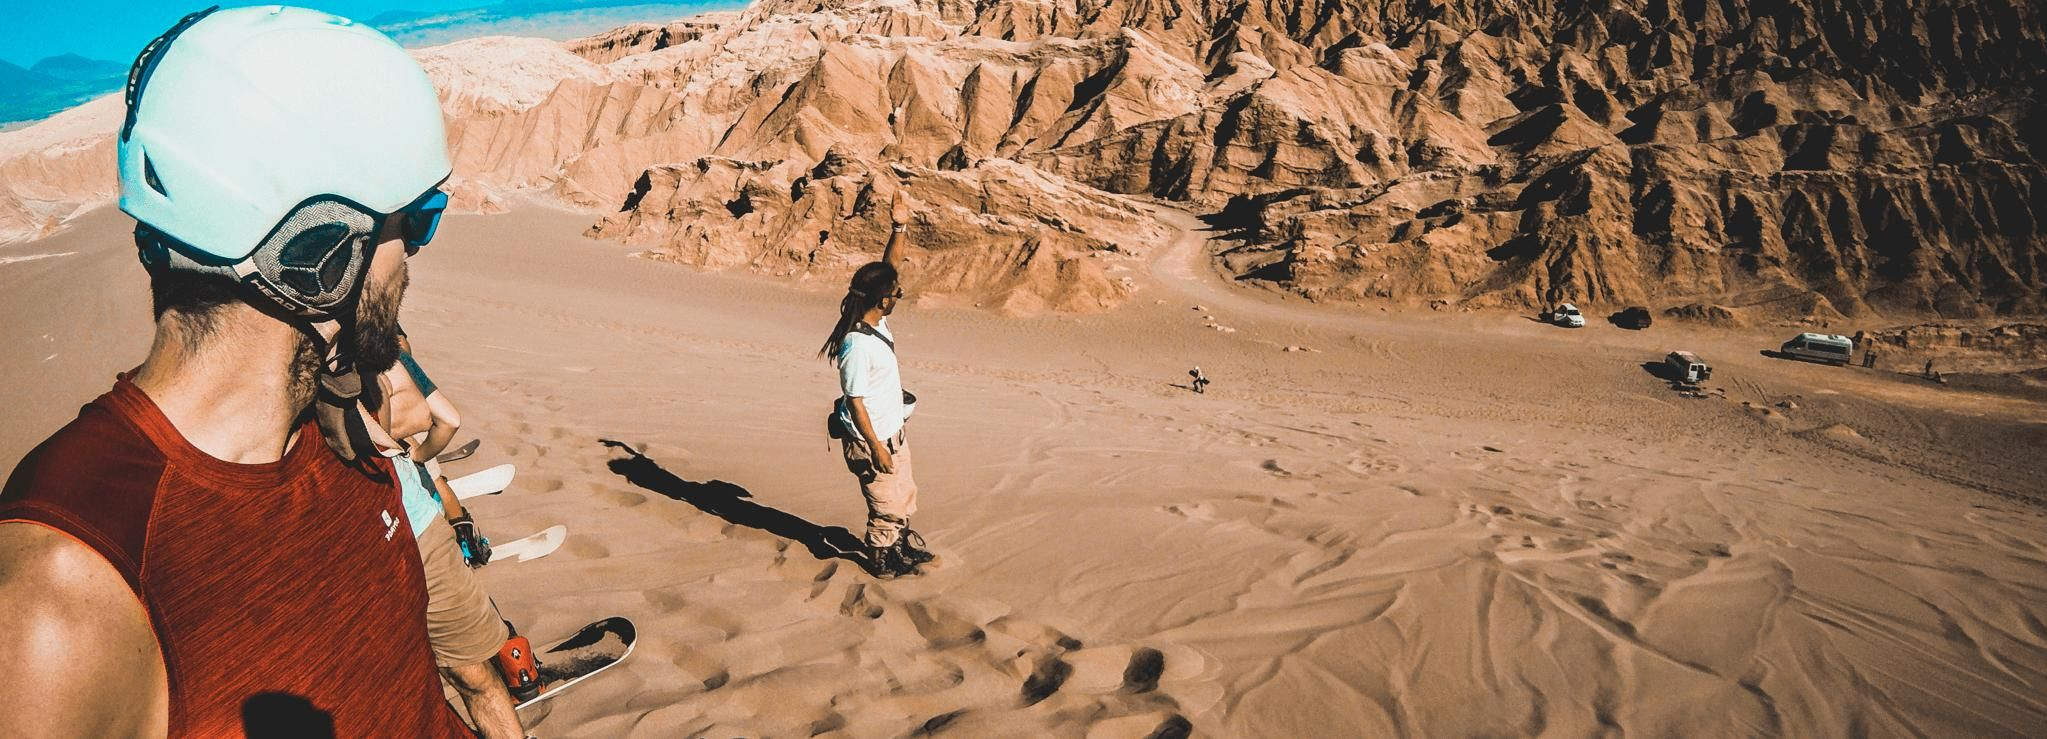 San Pedro de Atacama: Sandboarding Adventure in Death Valley